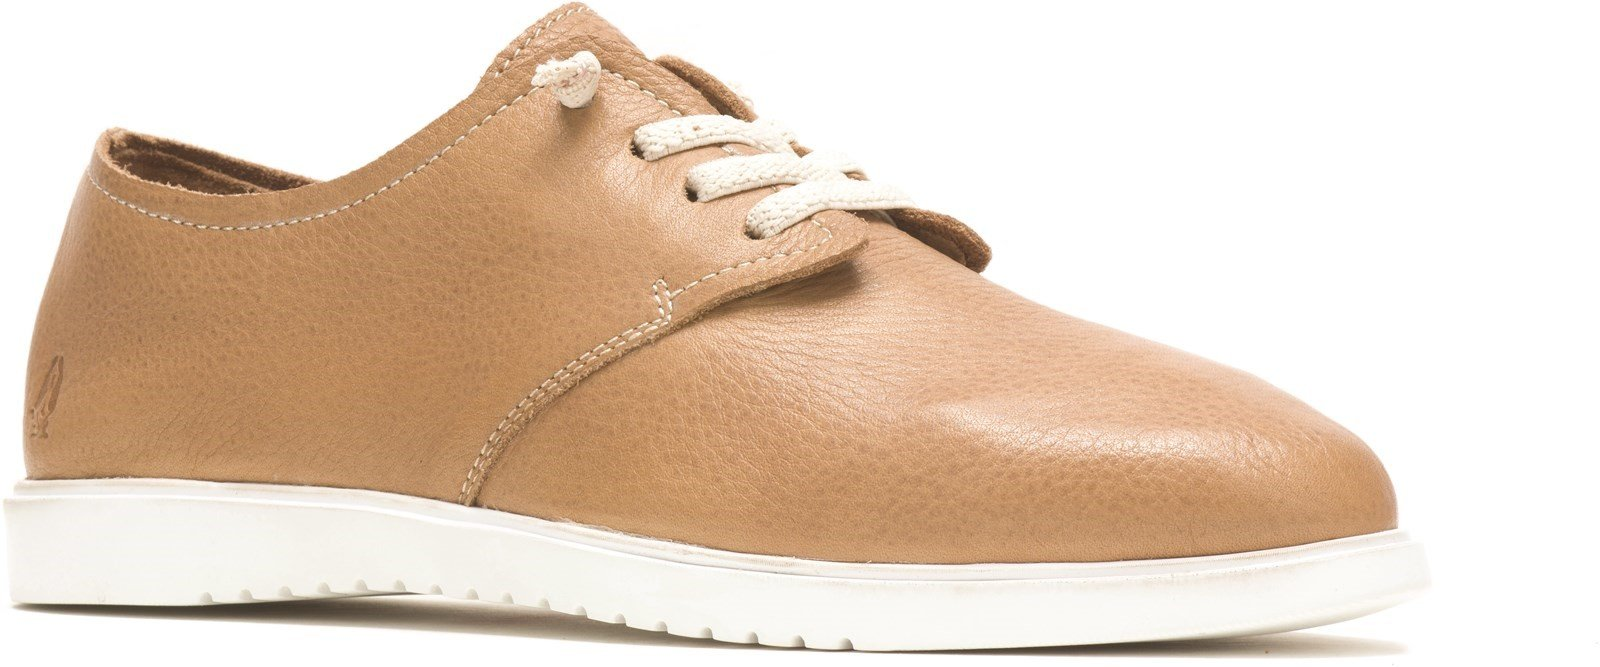 Hush Puppies Women's Everyday Lace Trainer Various Colours 31943 - Tan 3